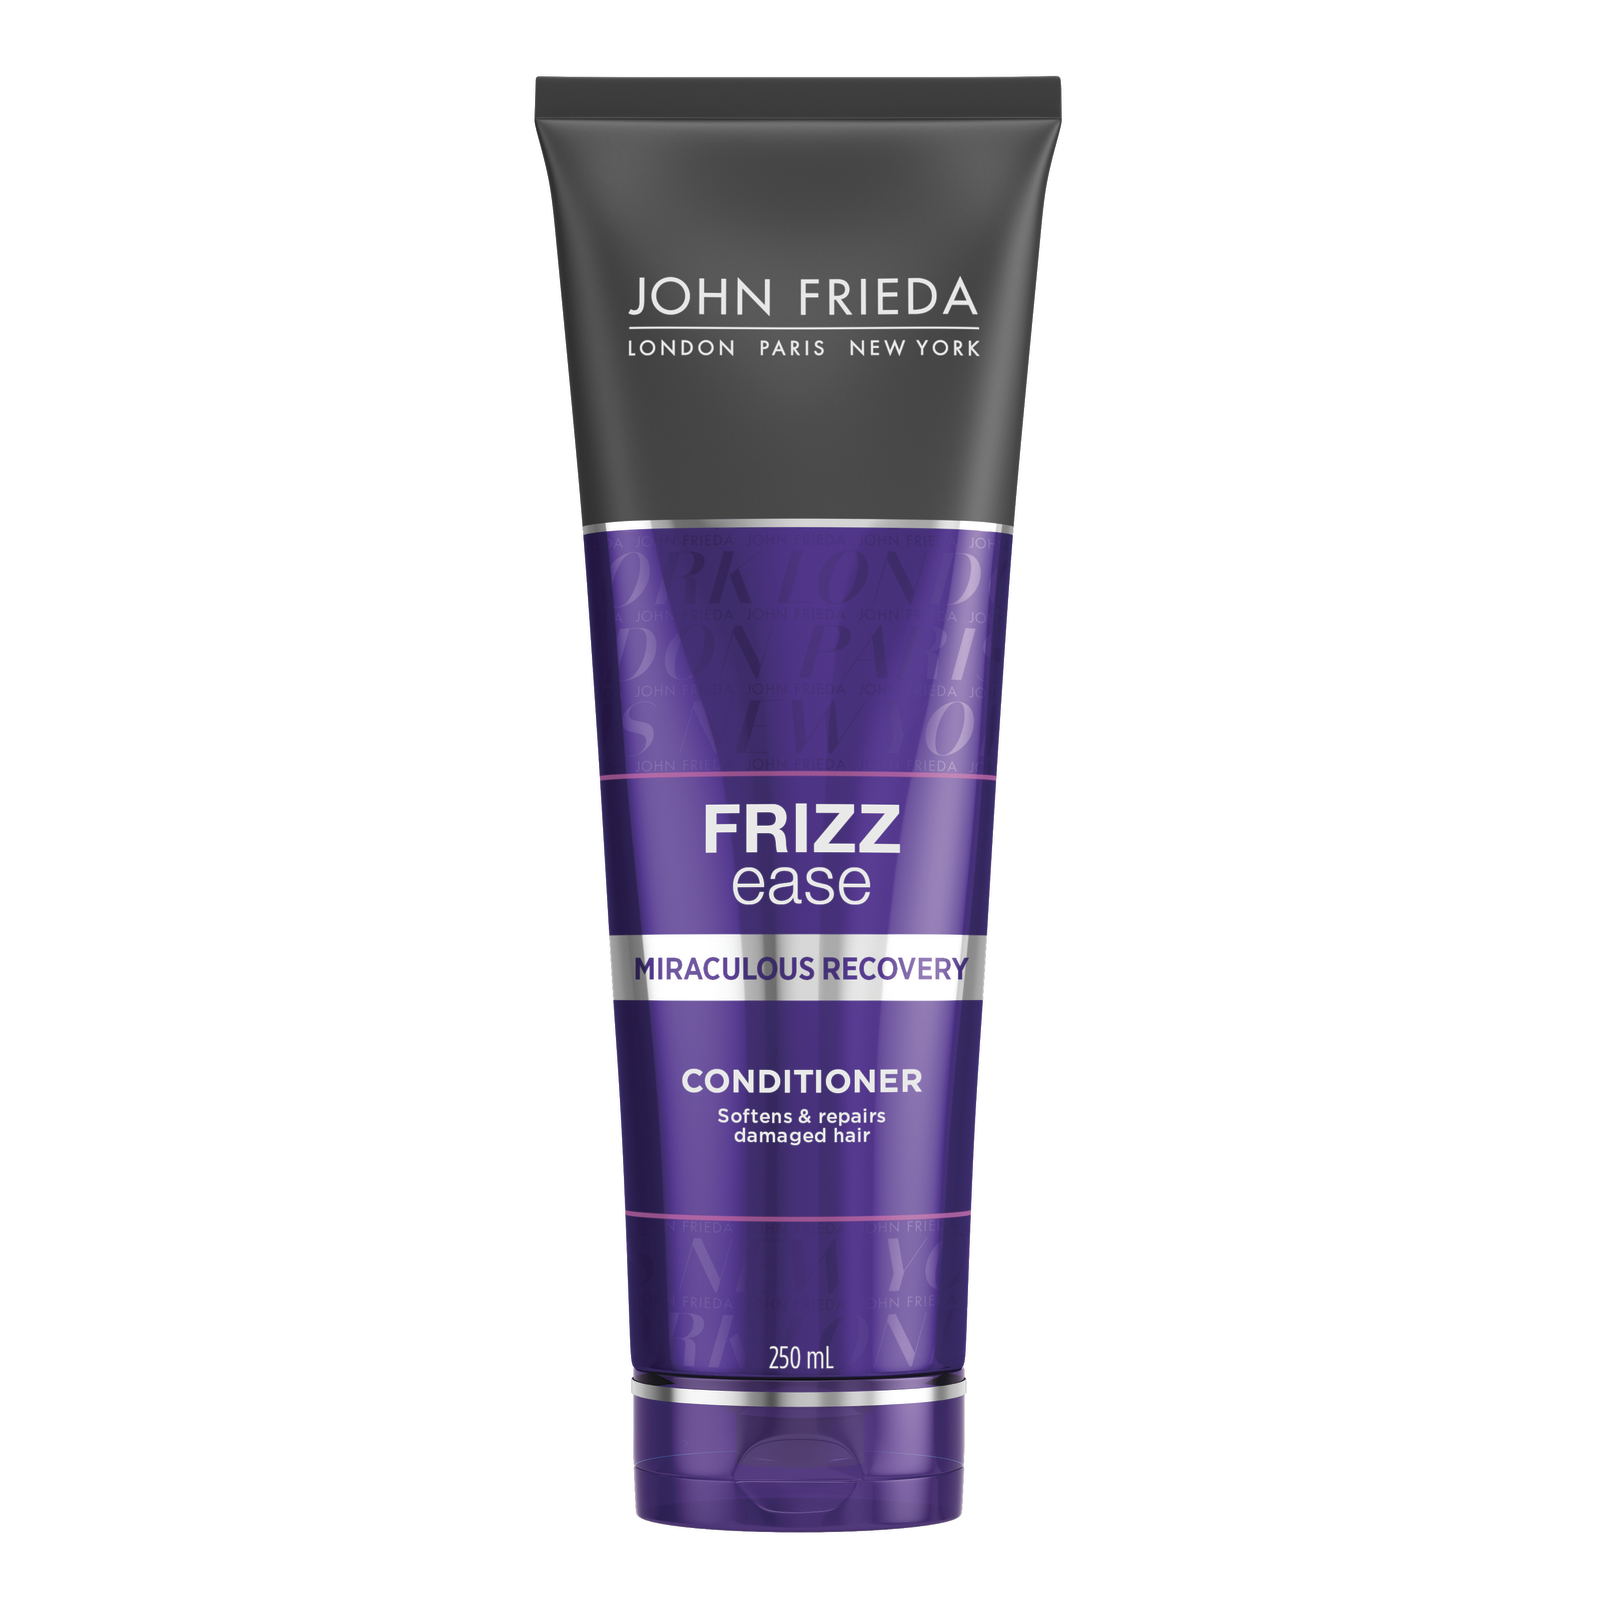 John Frieda Frizz Ease Miraculous Recovery Repairing Conditioner (250ml) image